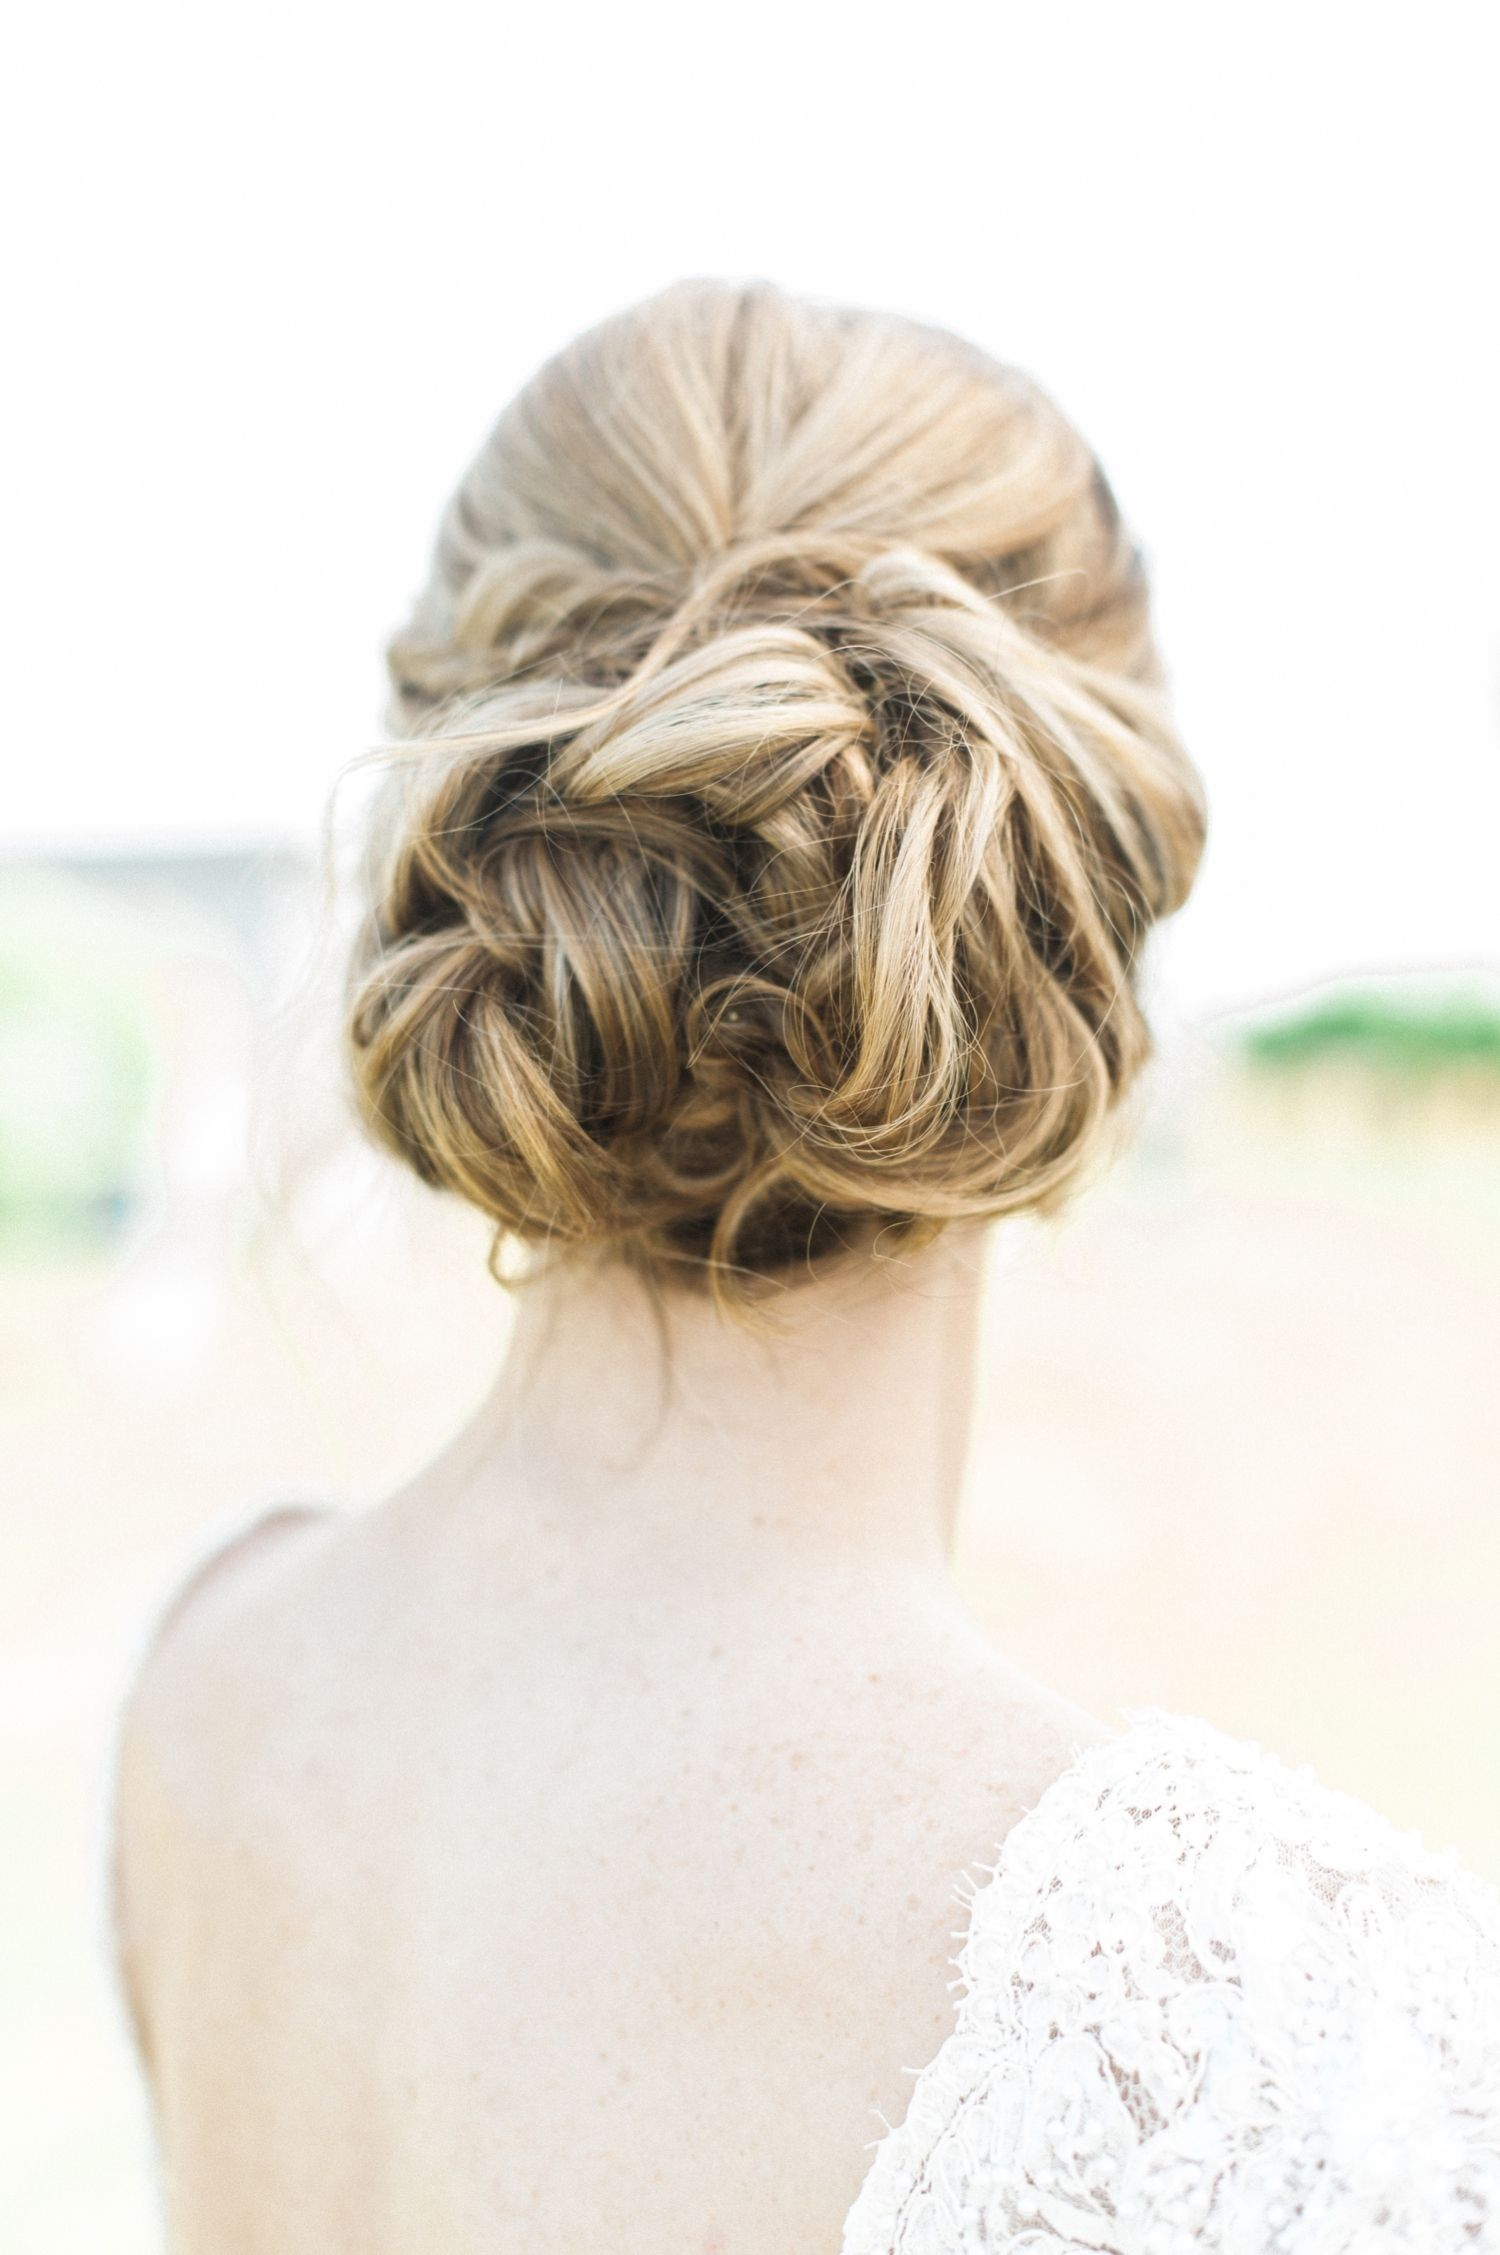 SMPWedding101 - Tips For a Great Hair + Makeup Trial Run | Gorgeous ...